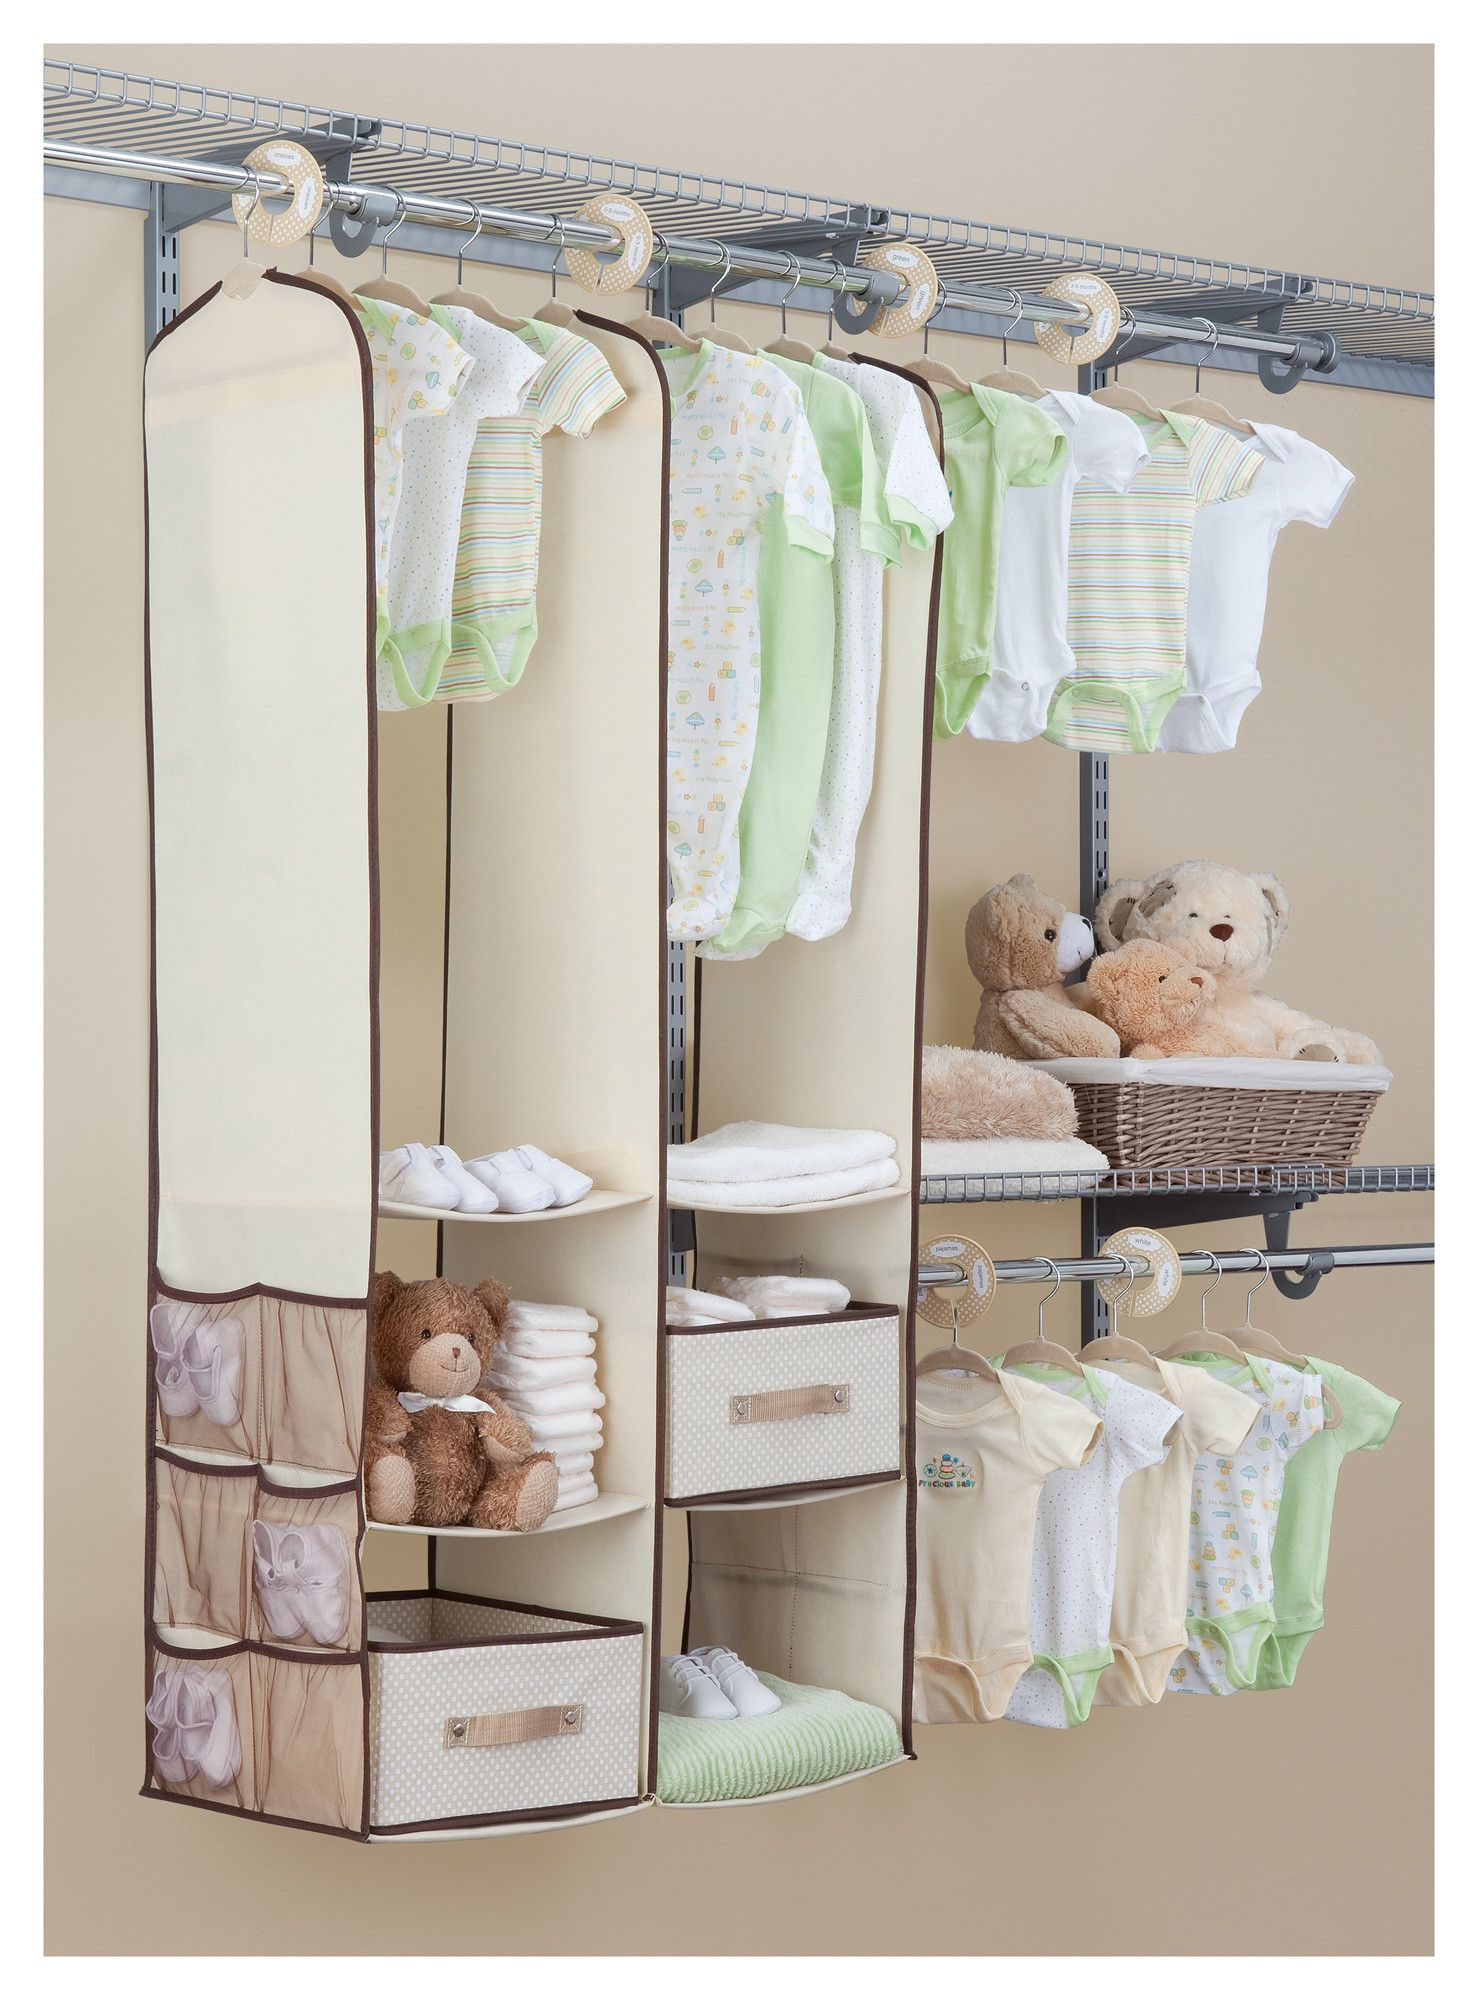 Charmant Delta Children 24 Piece Nursery Closet Organizer Set | Wayfair